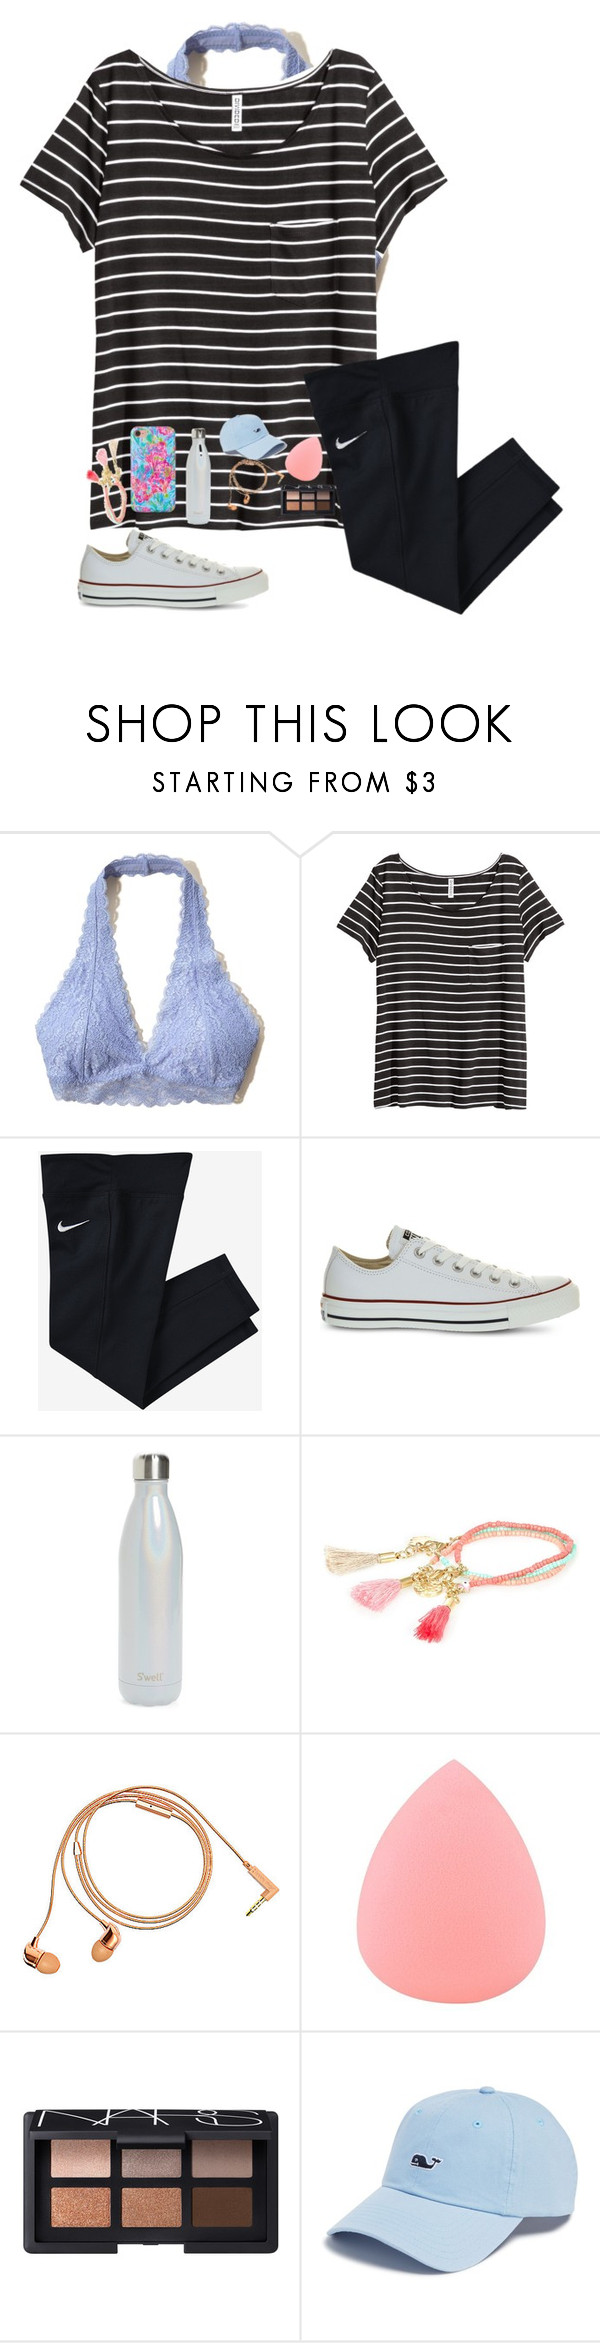 """Trying to workout but... didn't happen!!!!"" by mckenna1 ❤ liked on Polyvore featuring Hollister Co., H&M, NIKE, Converse, S'well, River Island, Happy Plugs, Zodaca, NARS Cosmetics and Vineyard Vines"